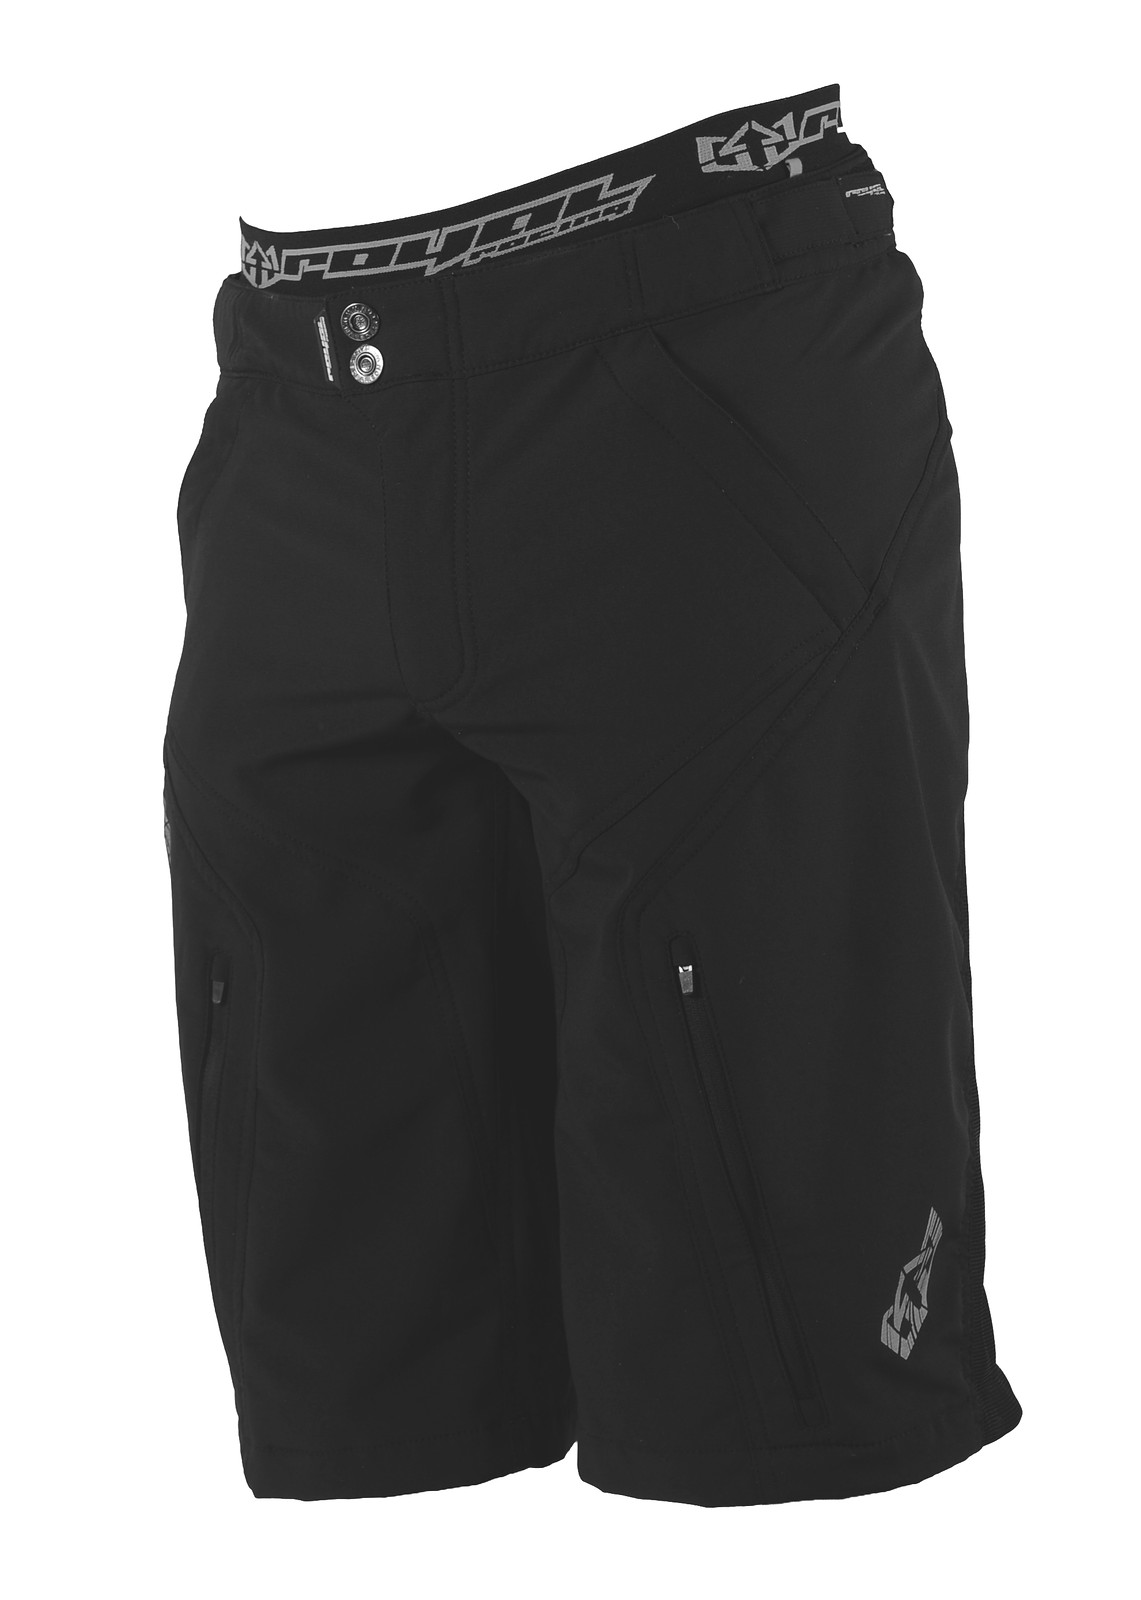 Royal 2013 Esquire Riding Short Short-Esquire-Black